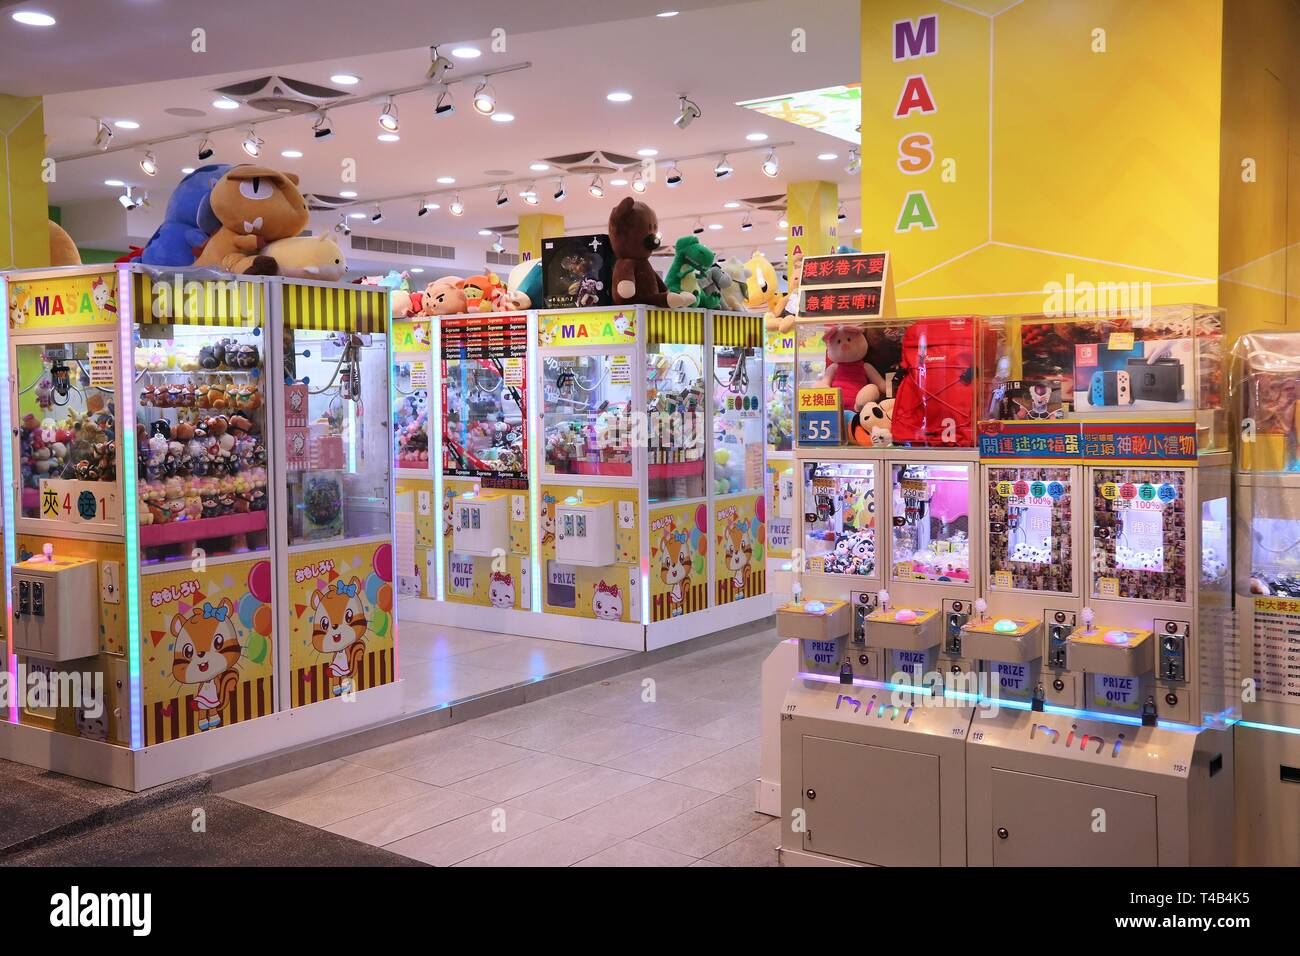 TAIPEI, TAIWAN - DECEMBER 3, 2018: Claw machine gaming parlor in Taipei, Taiwan. Claw machine arcades in Taiwan suddenly rose in numbers from 3,300 in - Stock Image